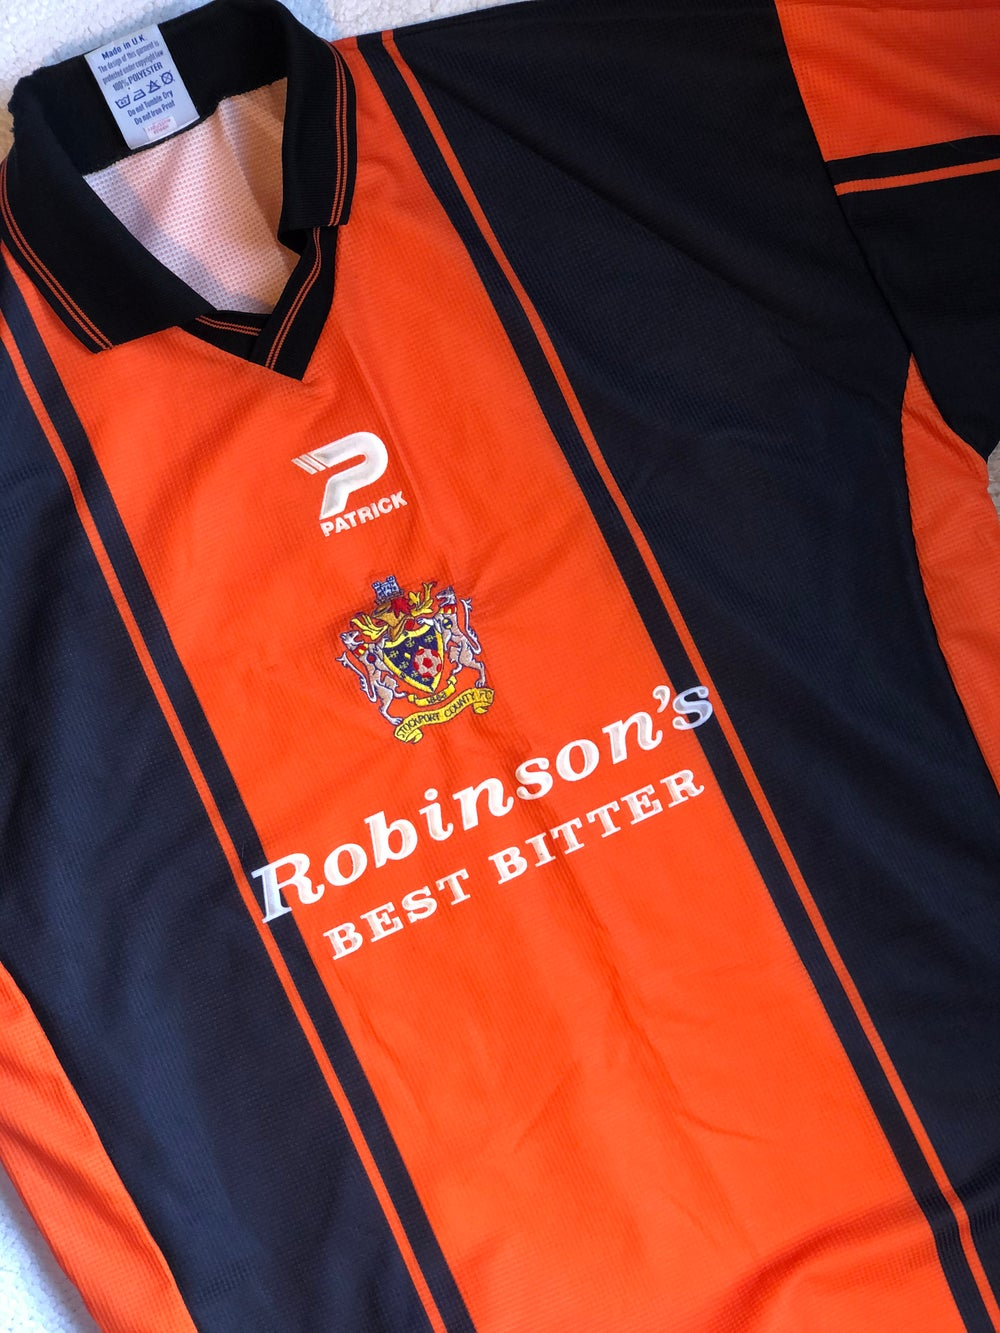 Image of Replica 1999/00 Patrick Away Shirt